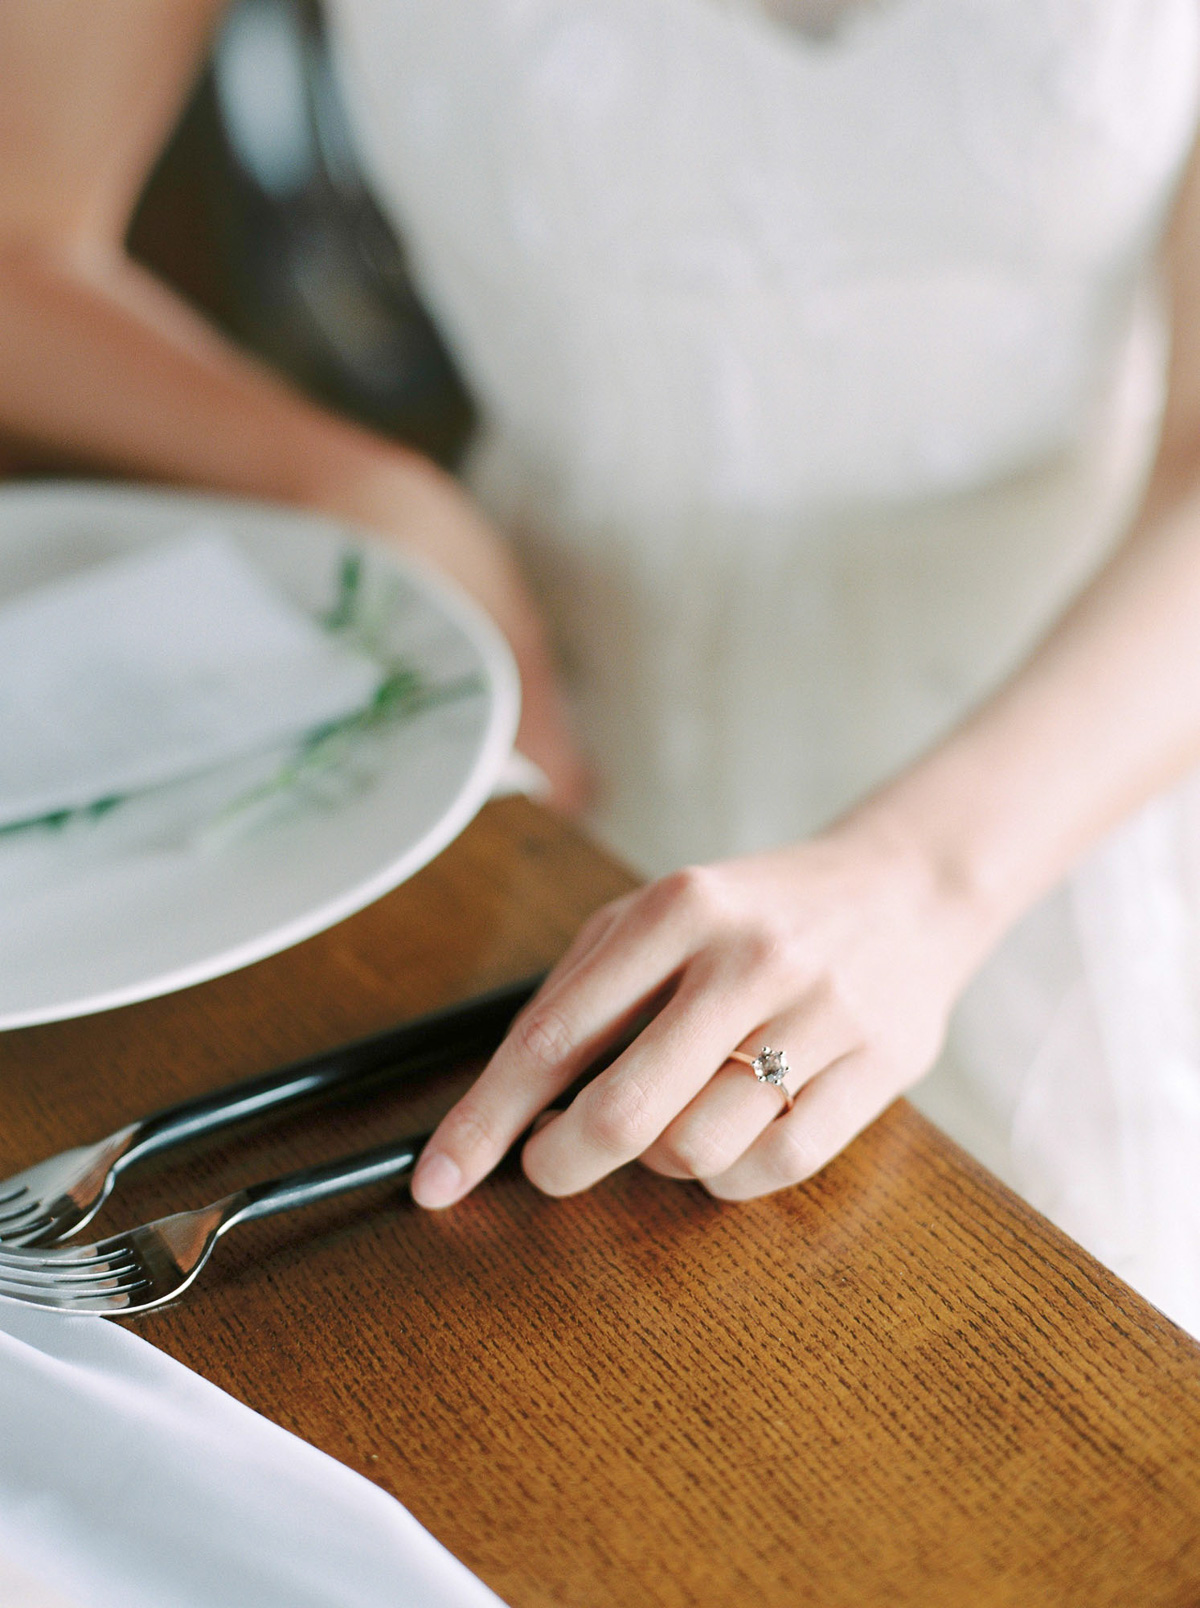 will-reid-photo-vineyard-bride-swish-list-kurtz-orchards-market-niagara-on-the-lake-wedding-editorial-16.jpg